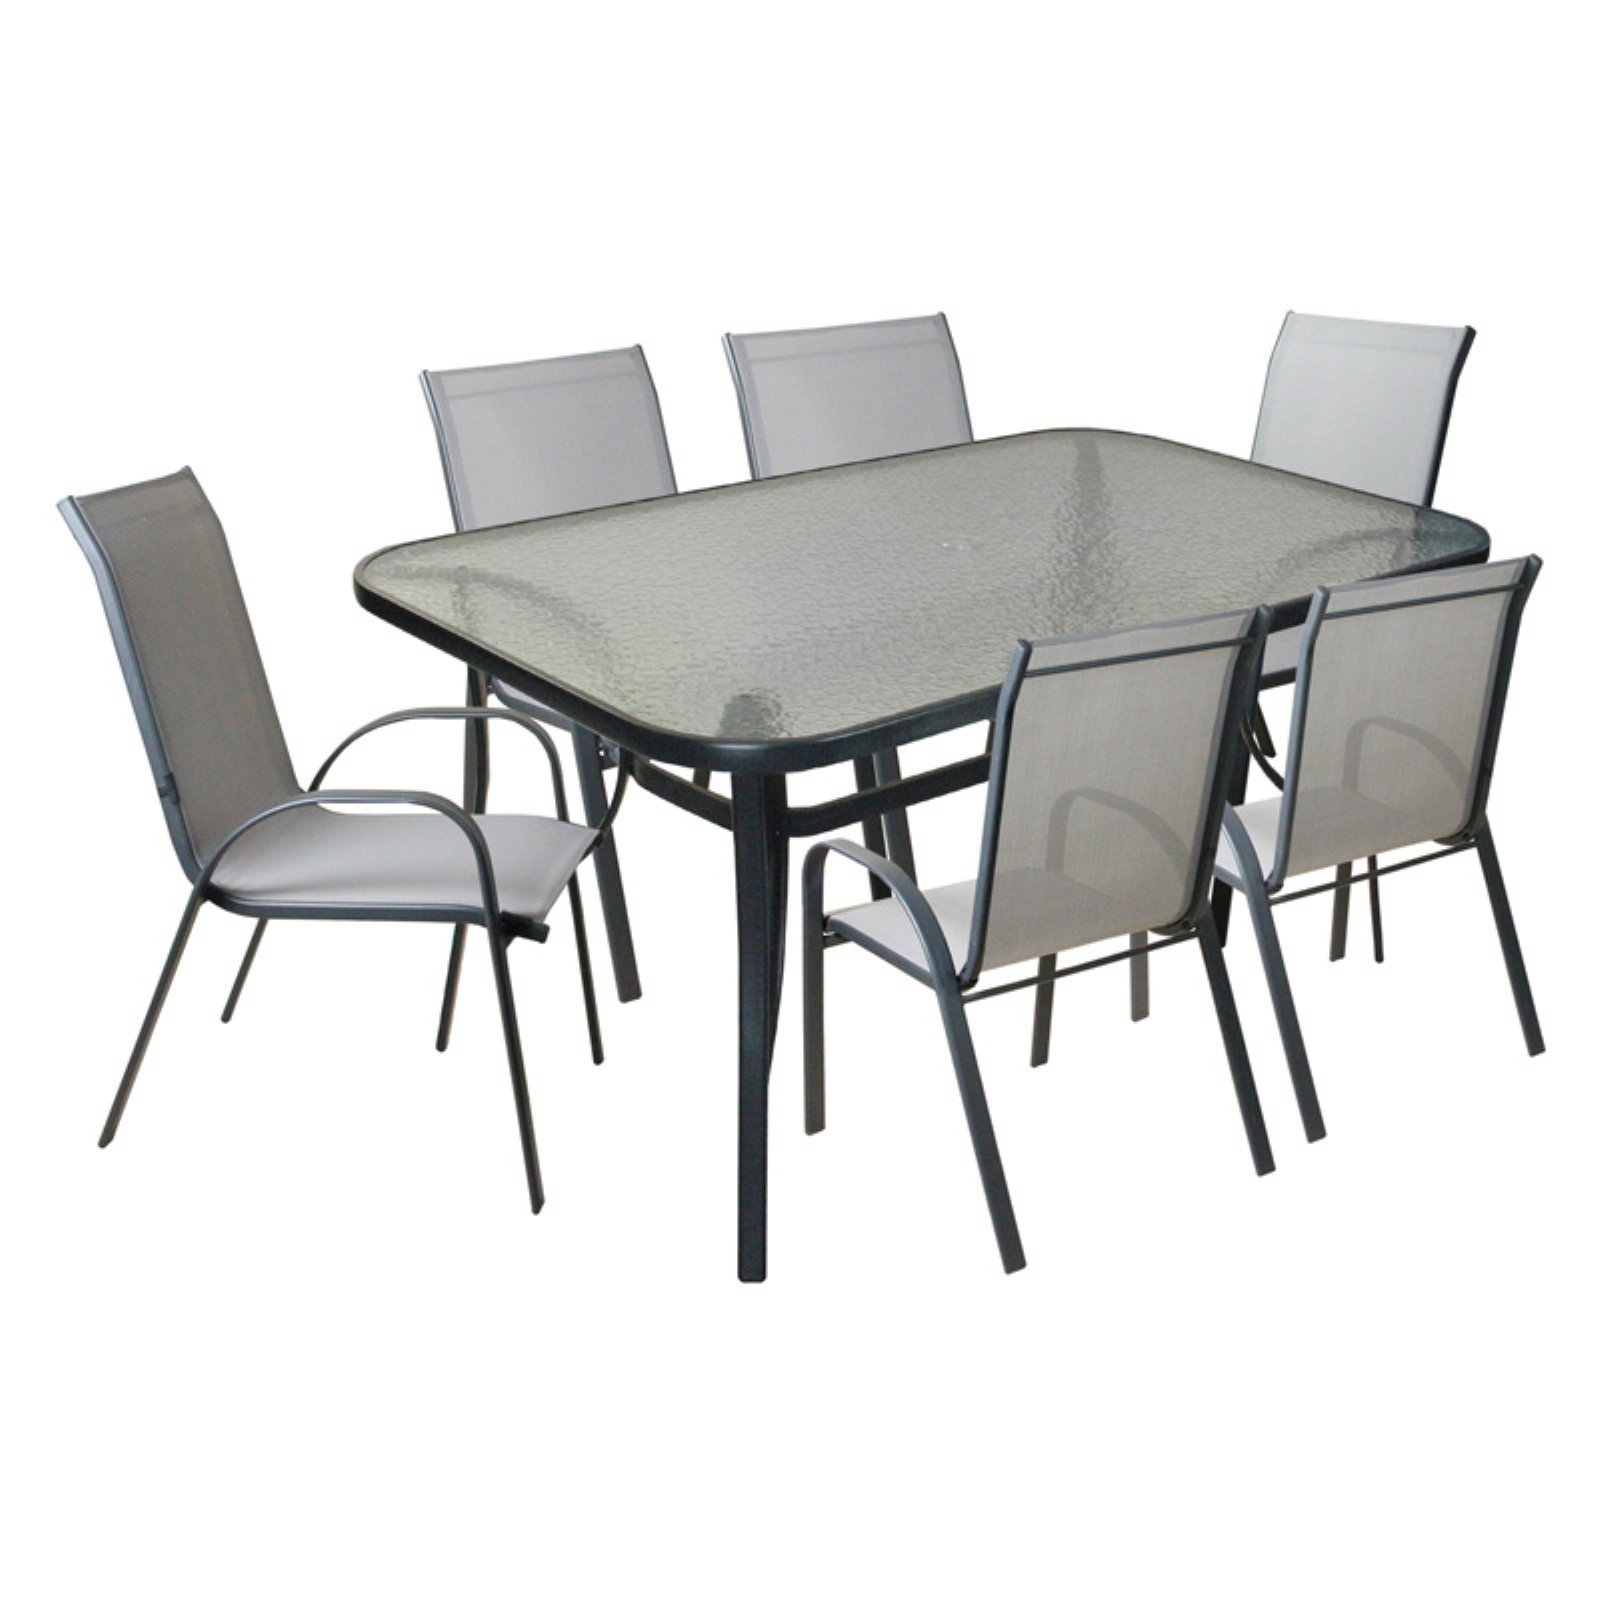 CC Outdoor Living 7 Piece Outdoor Textilene Mesh and Steel ... on Cc Outdoor Living id=86125